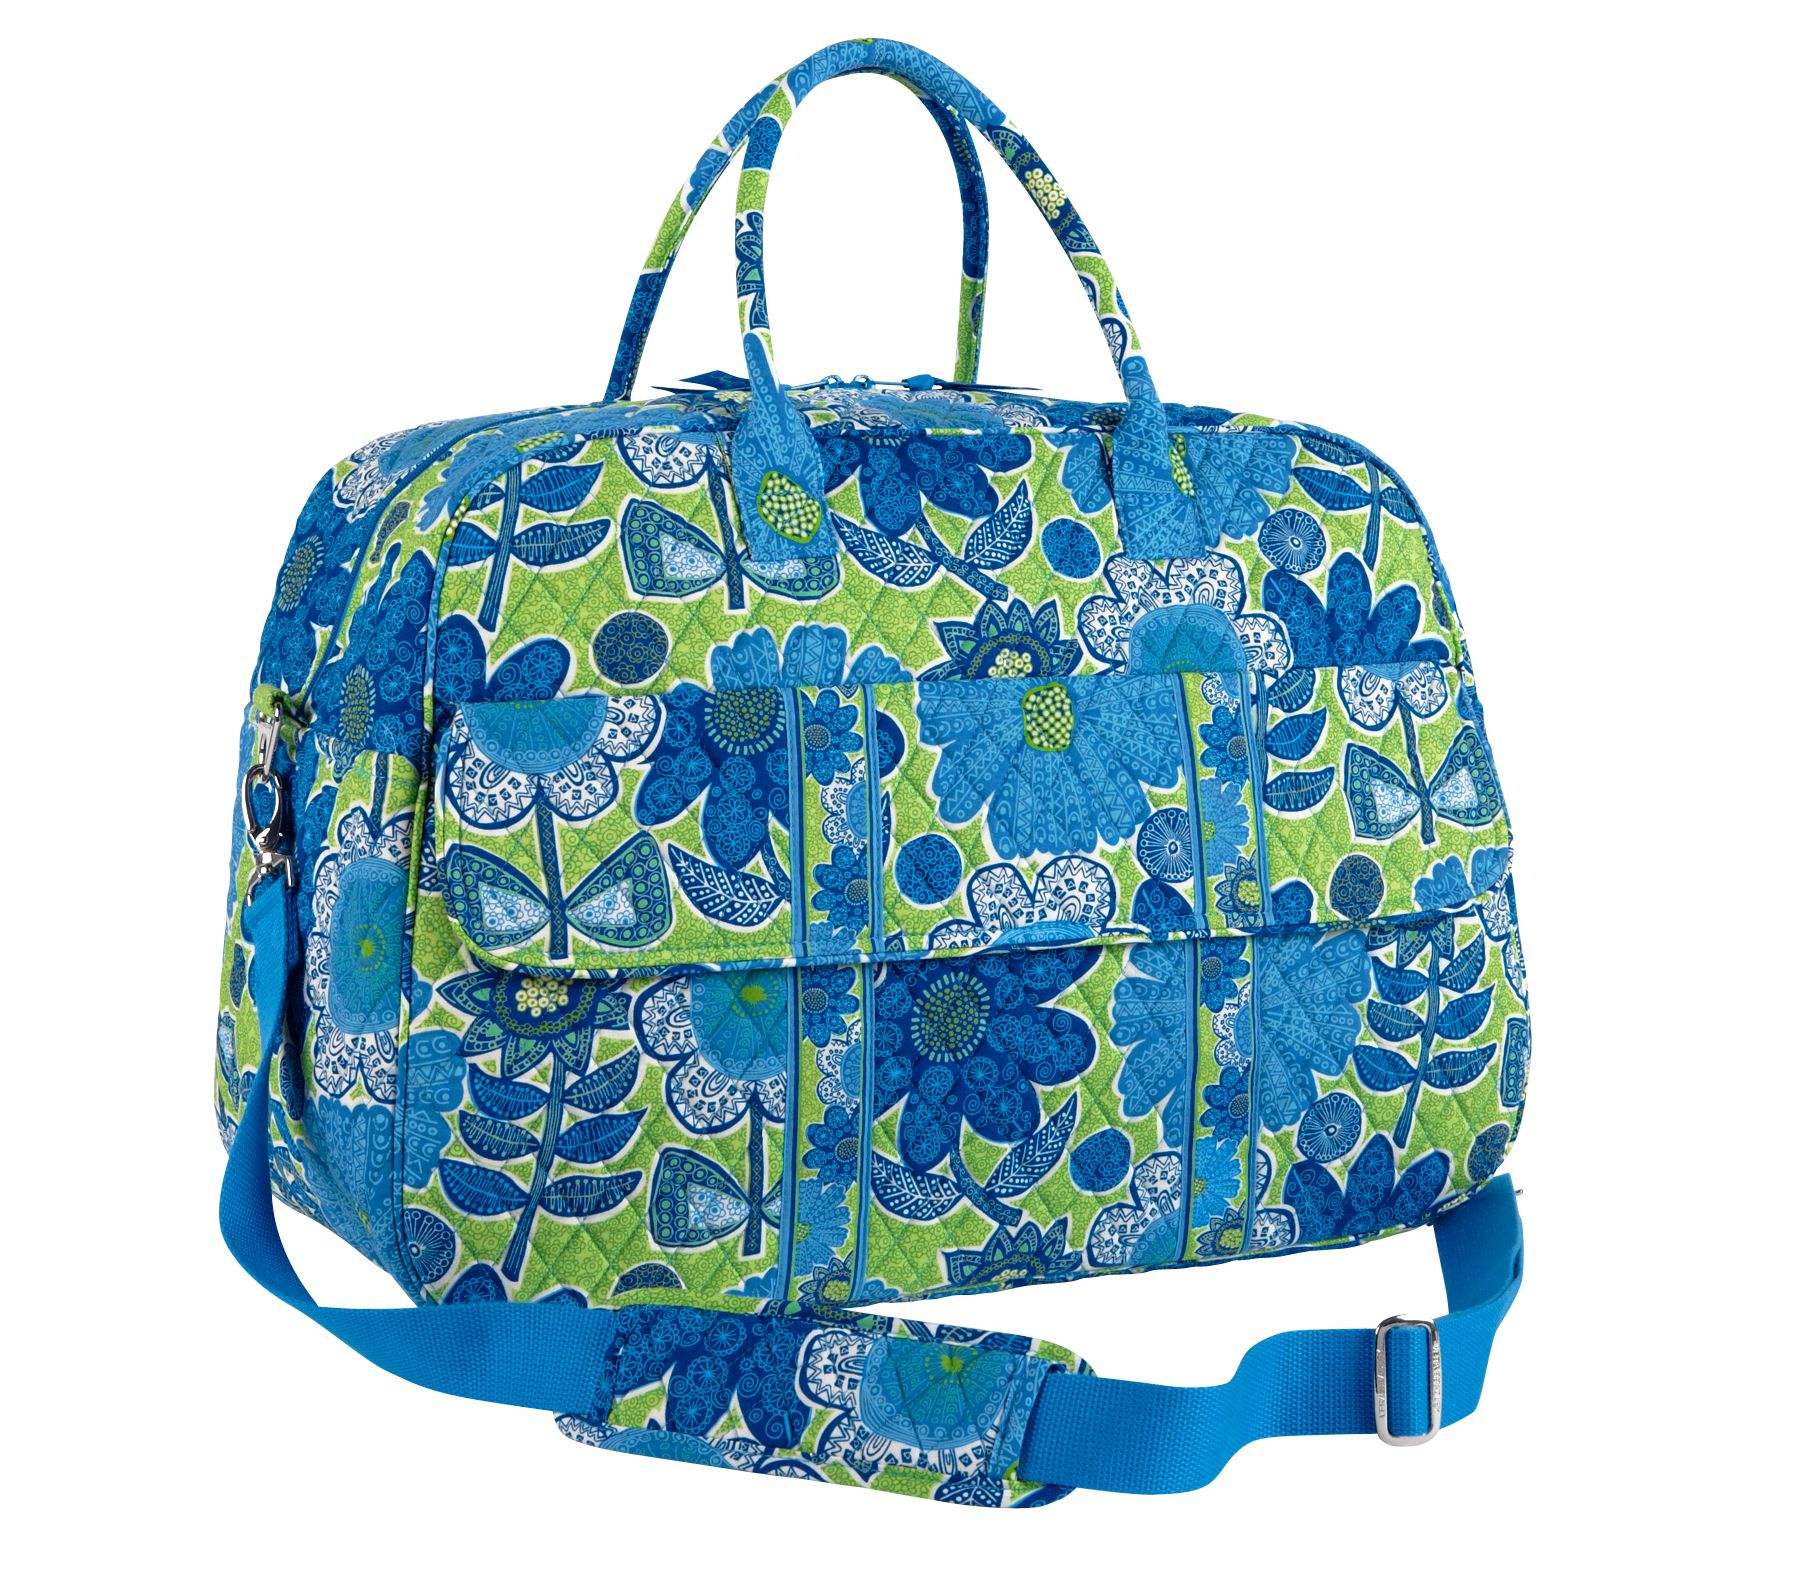 Tagged as: Vera Bradley 40% off , Vera Bradley Grand Traveler